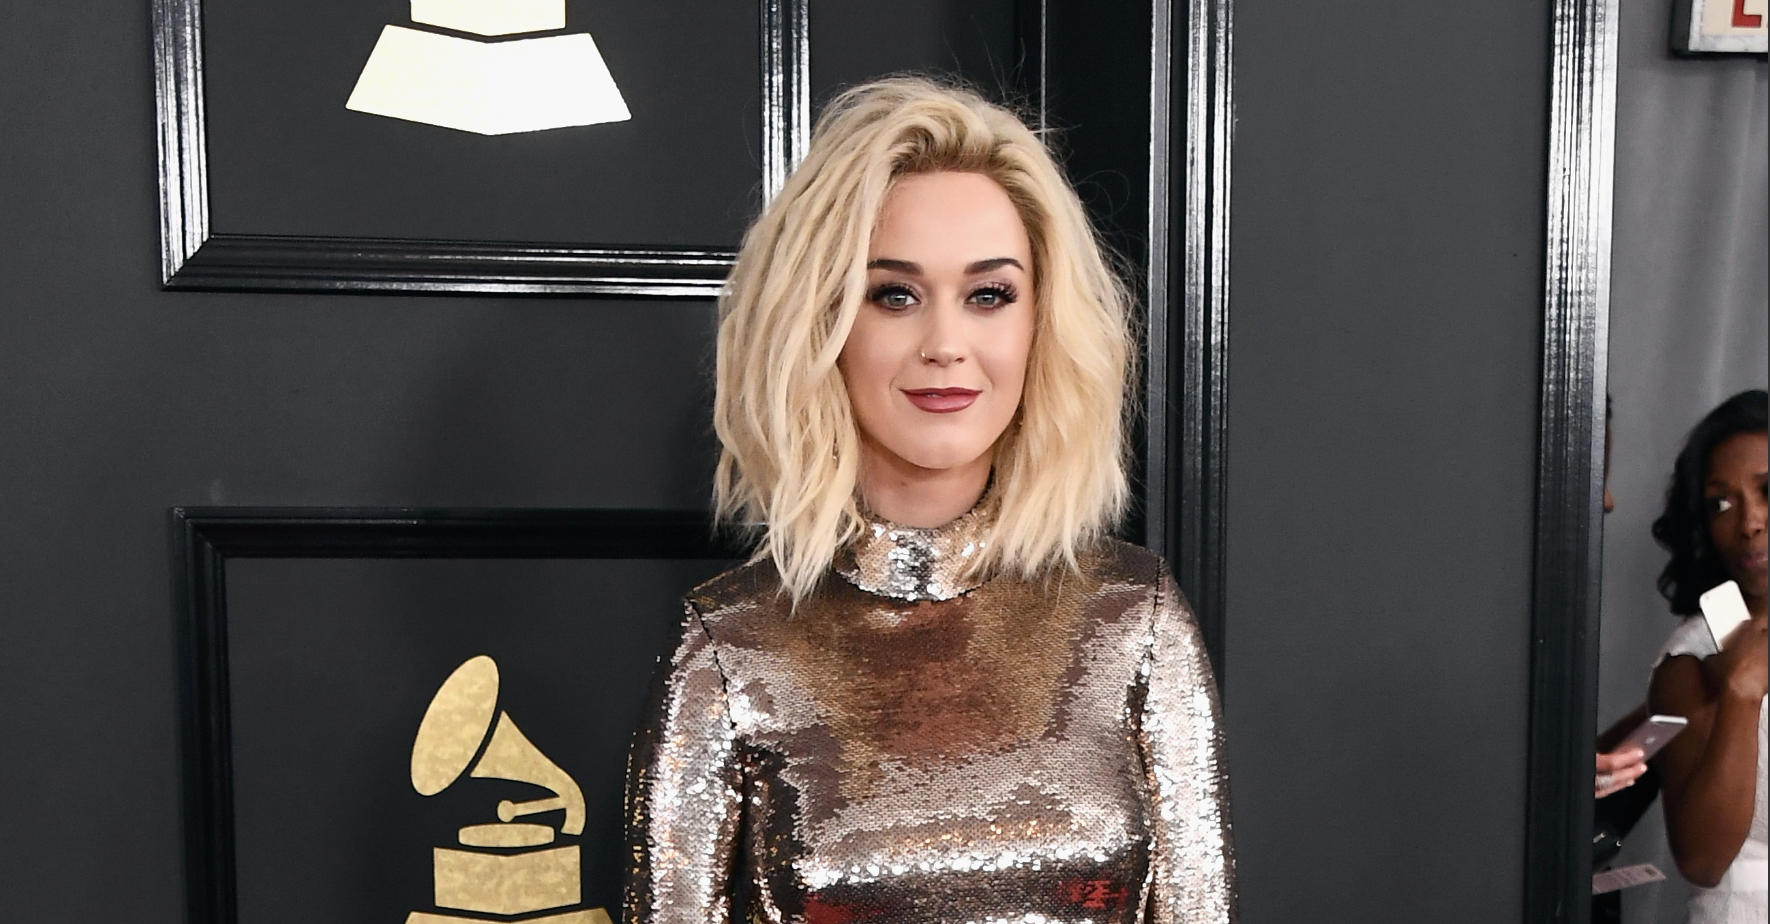 Katy Perry's sparkly martini-inspired dress took the Grammys red carpet to the next level